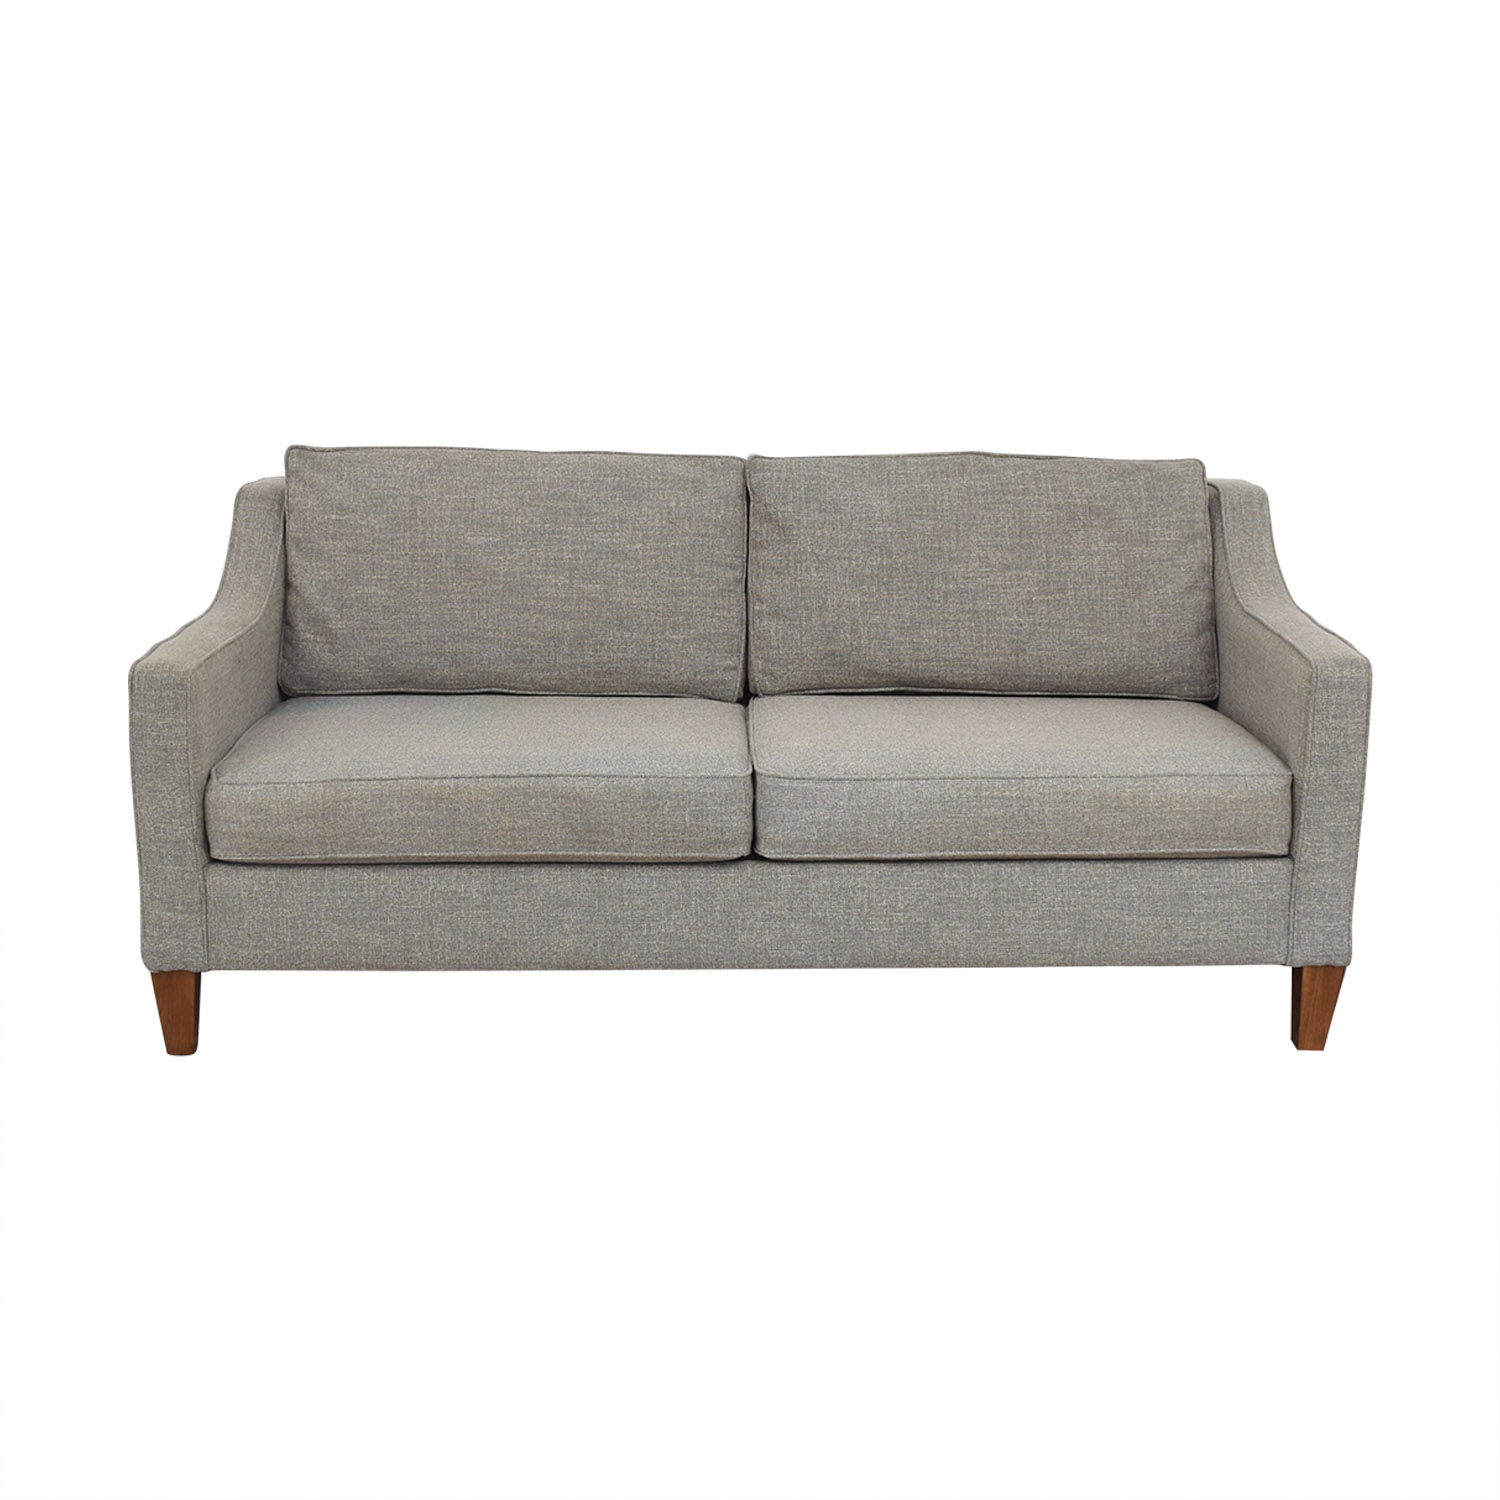 West Elm Paidge Sofa / Classic Sofas